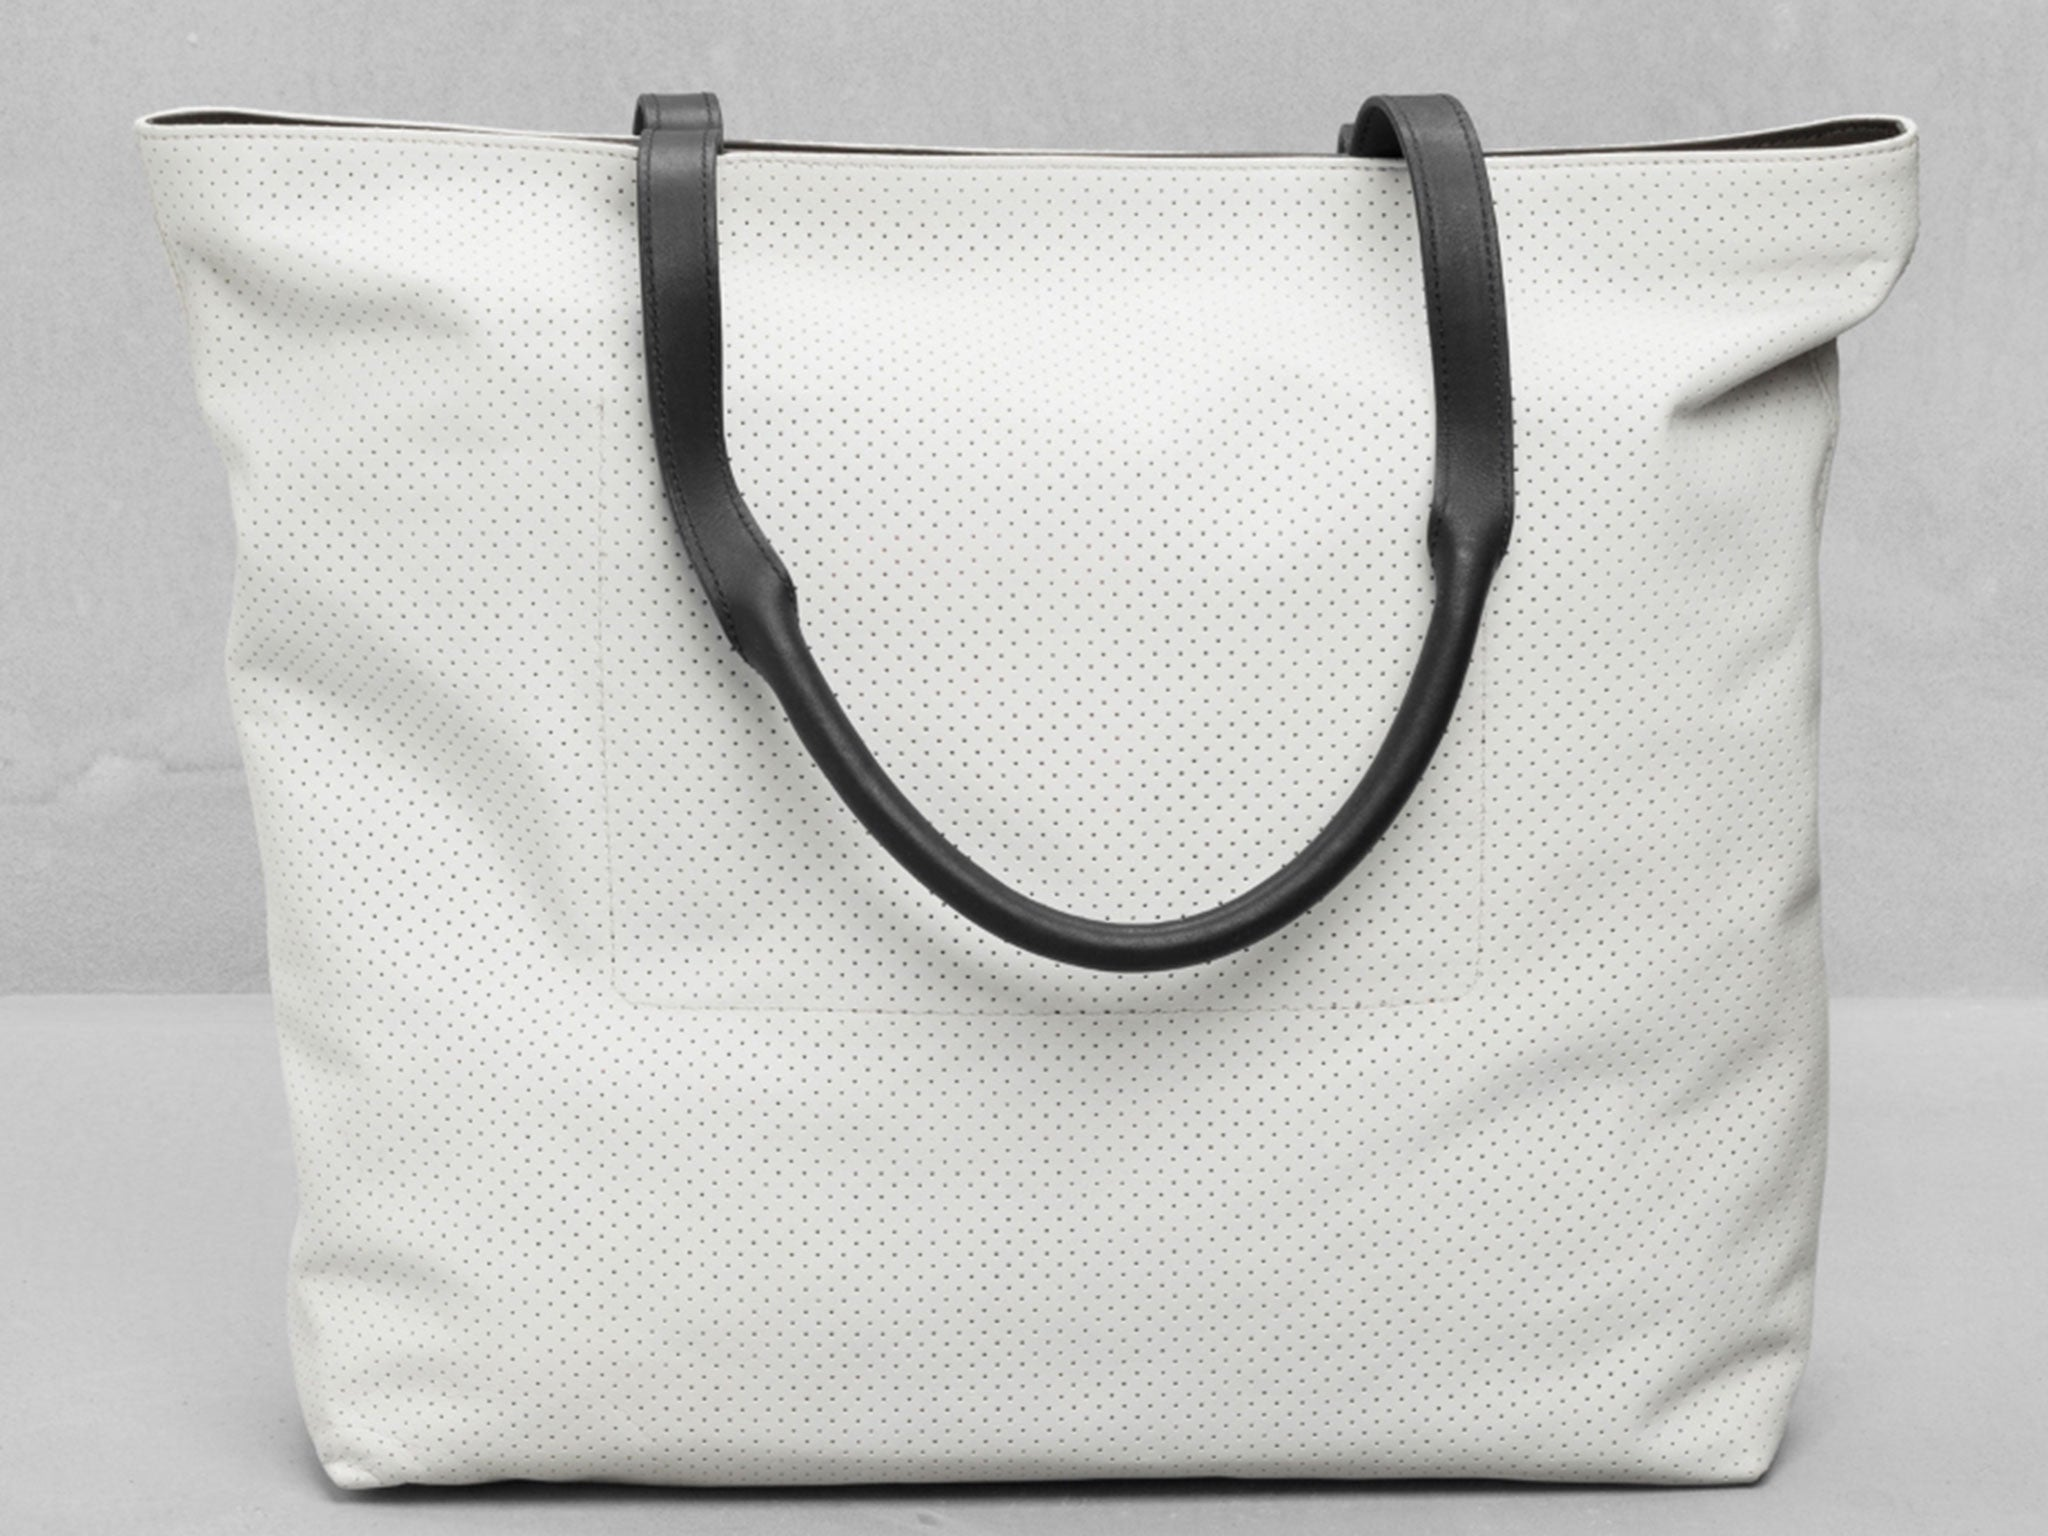 fa2227717e9 Collection Weekend by John Lewis Morgan Leather Tote Bag. Mulberry Tessie  Tote. Orla Kiely Patent Tote. Perforated Tote